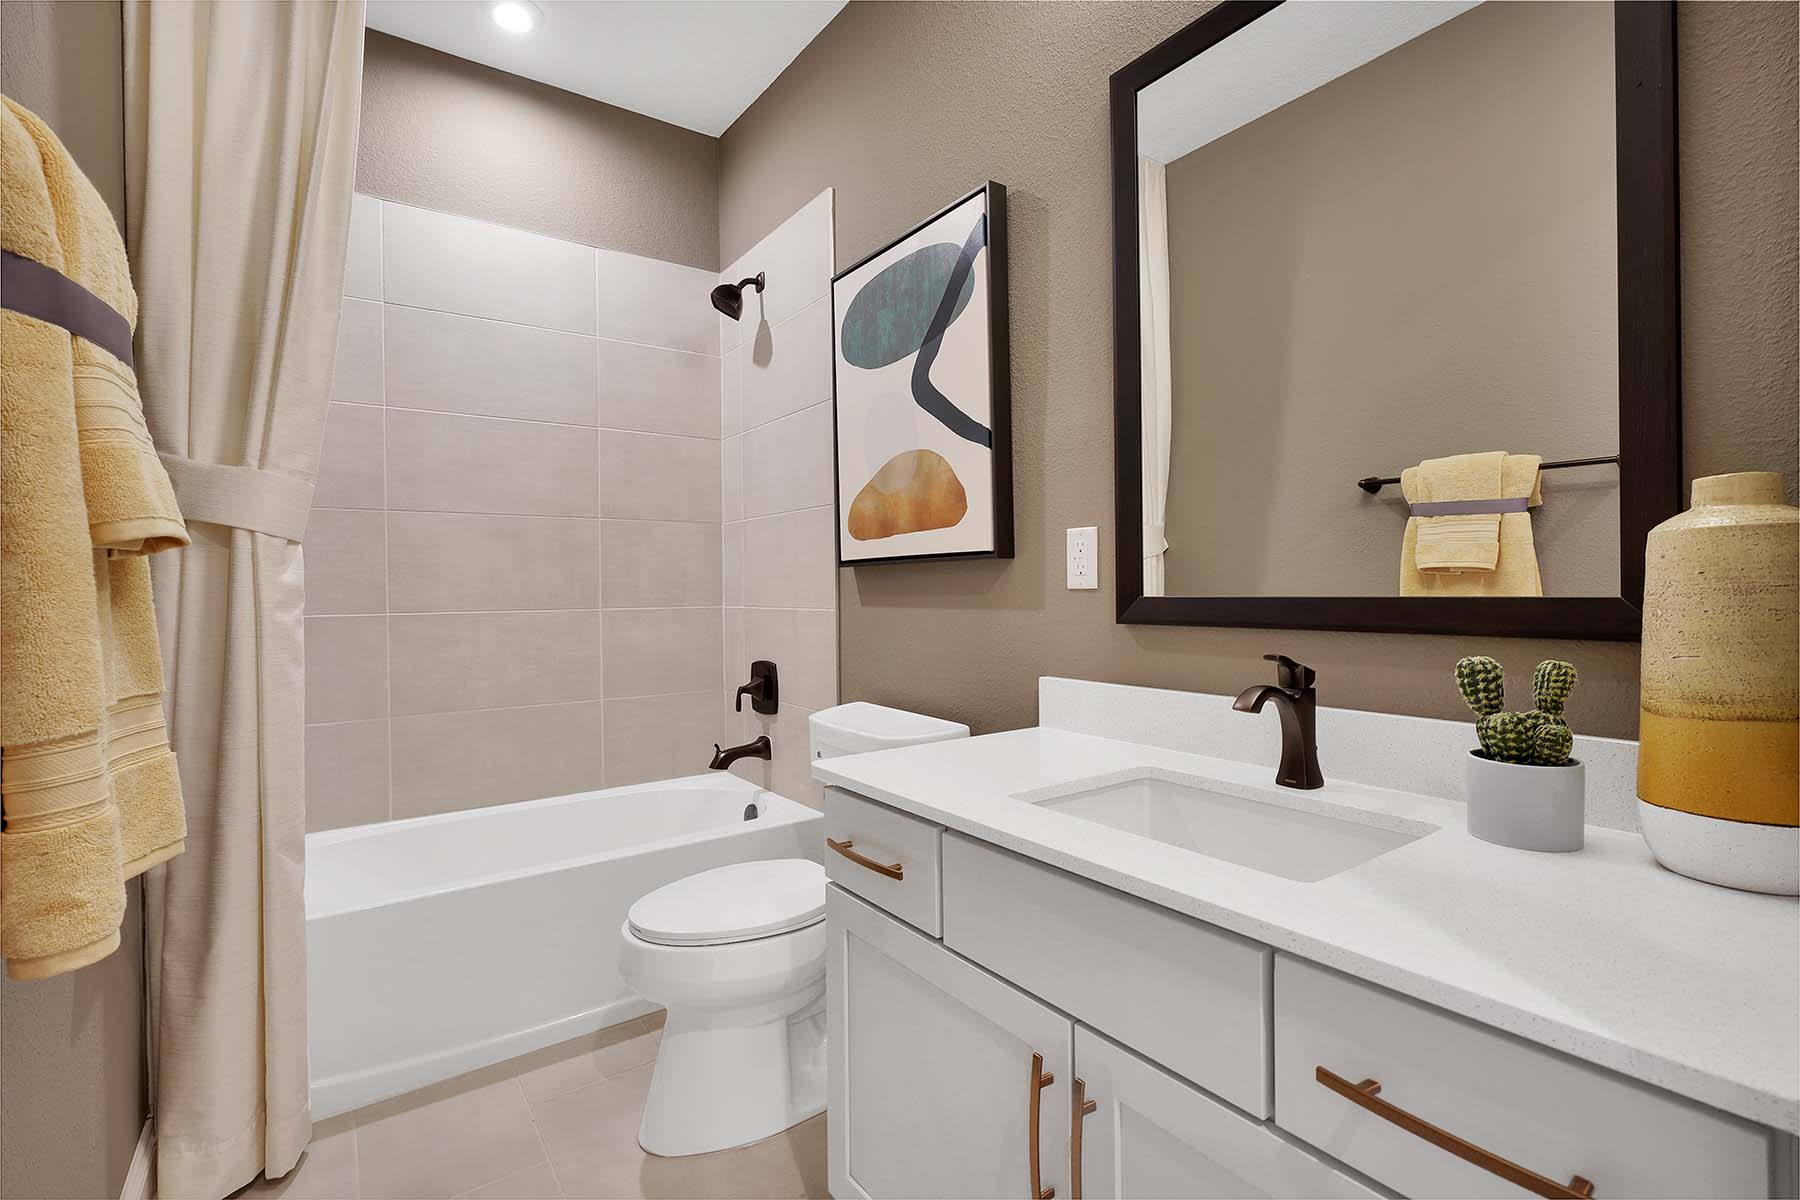 Talise Plan Bath at Pablo Cove in Jacksonville Florida by Mattamy Homes